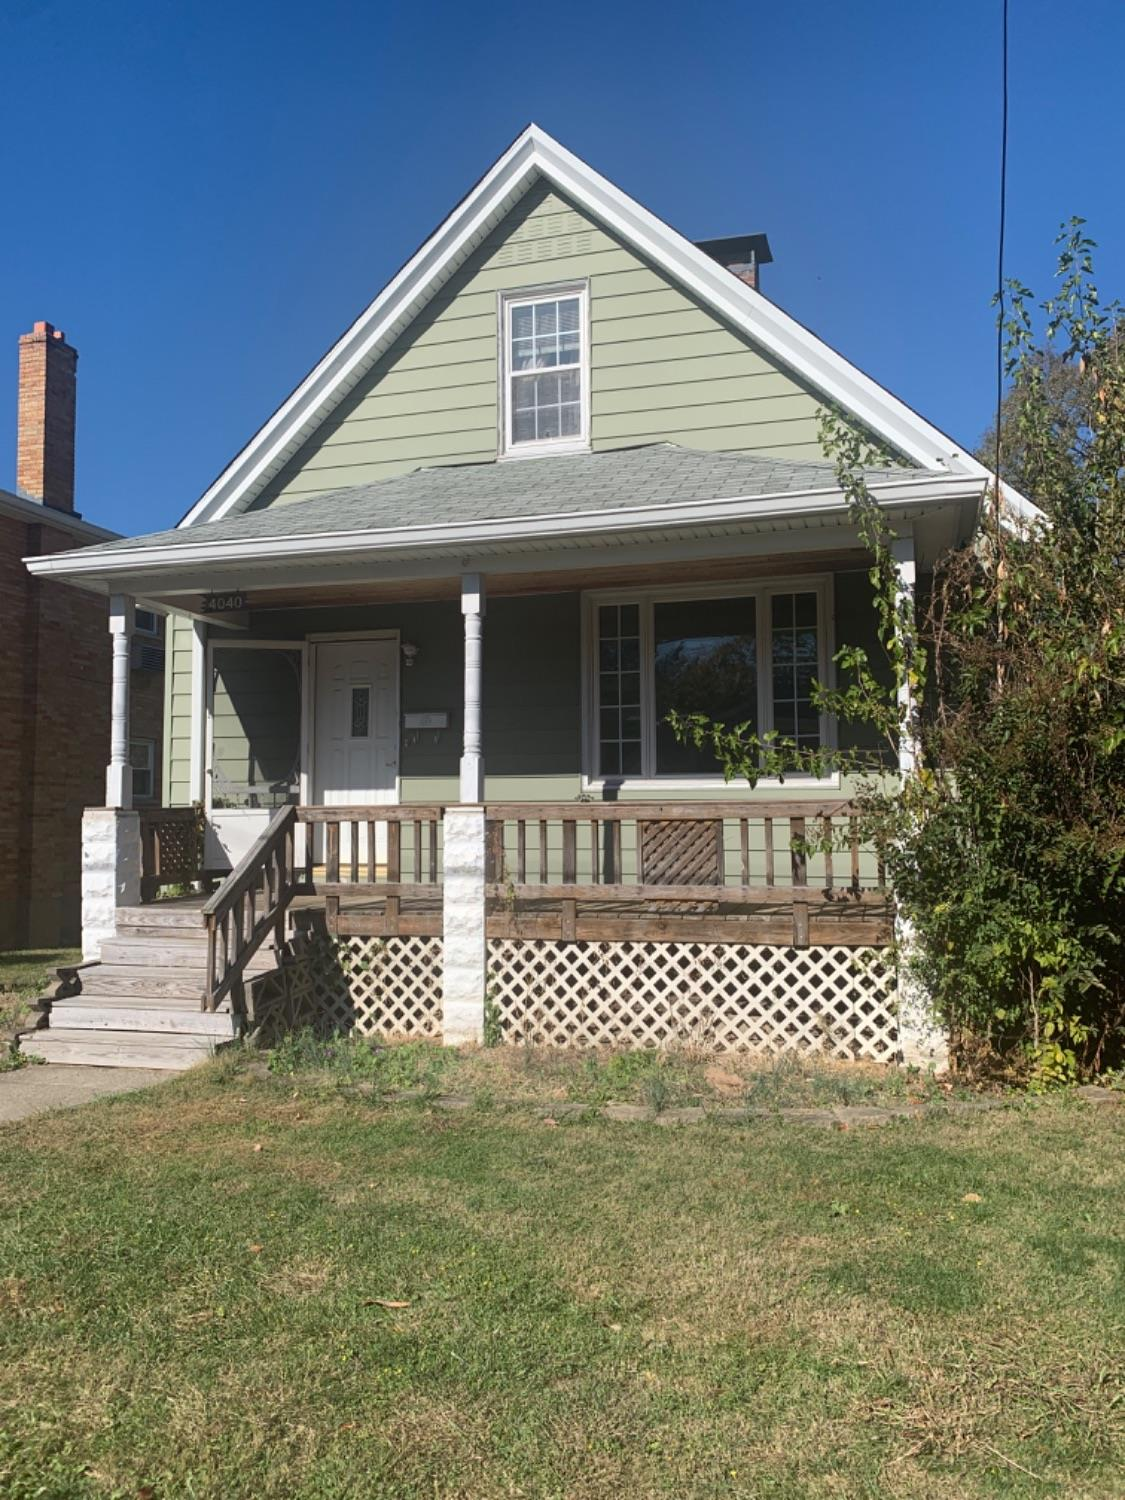 Property for sale at 4040 Oleary Avenue, Deer Park,  Ohio 45236